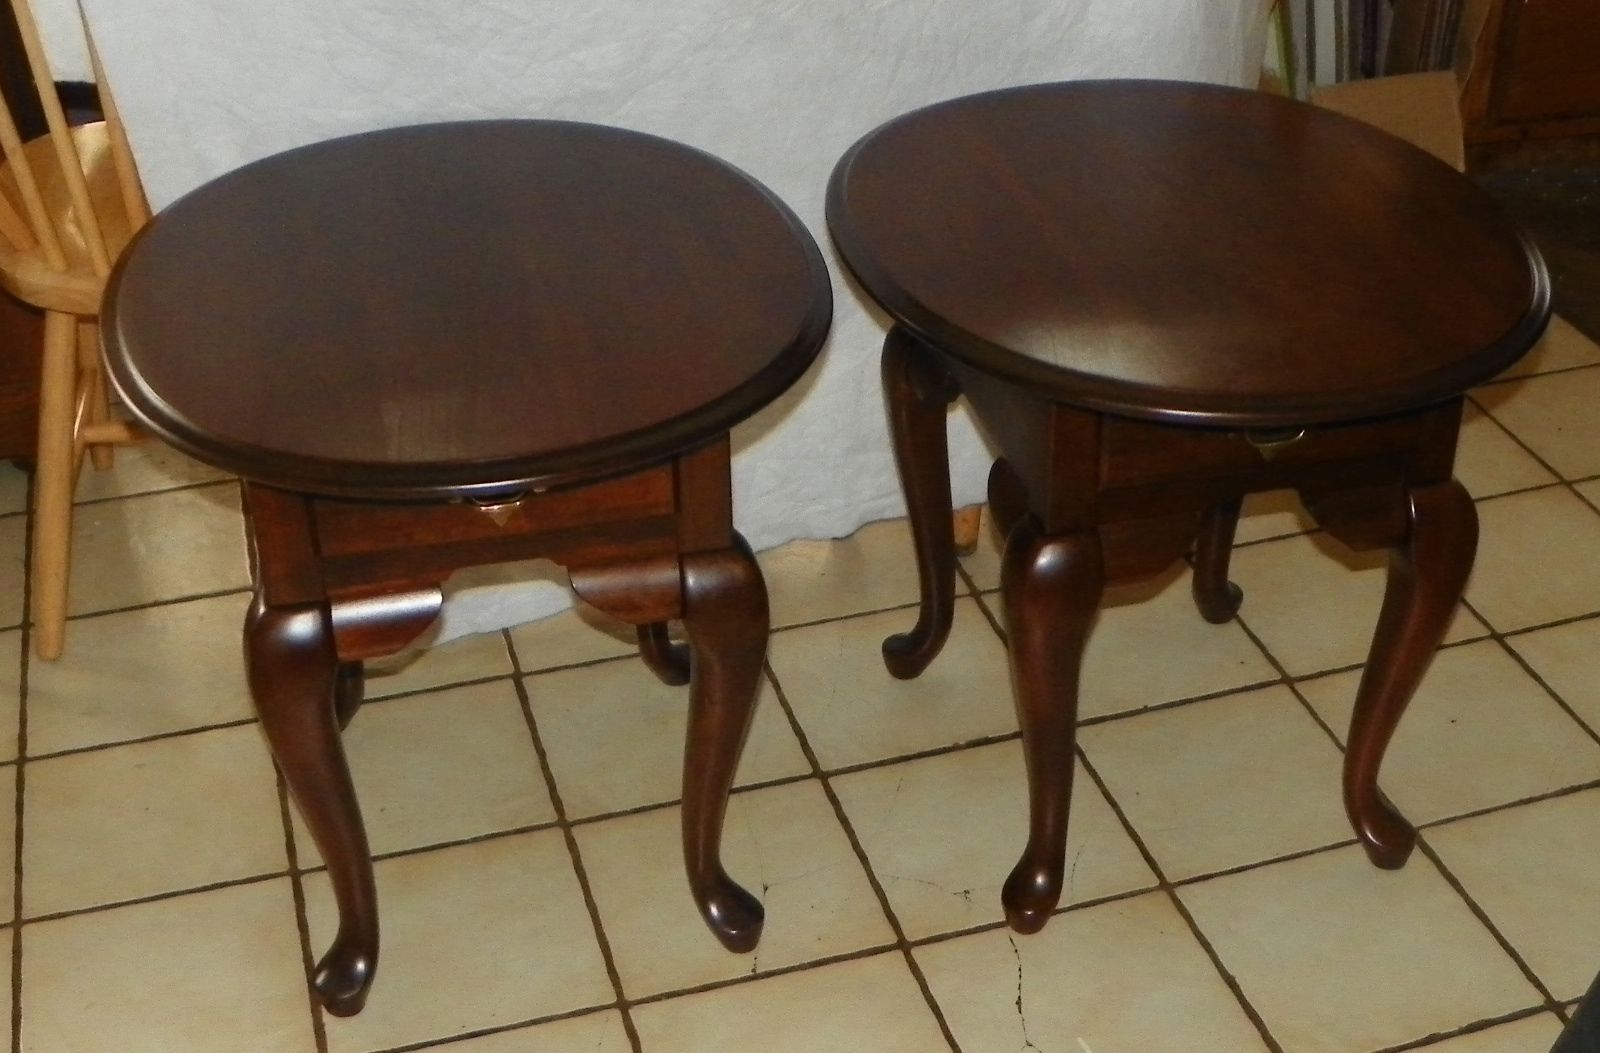 pair solid cherry oval end tables side and similar items broyhill previous unfinished wood company kmart black stools dark brown living room table small bedside stand french